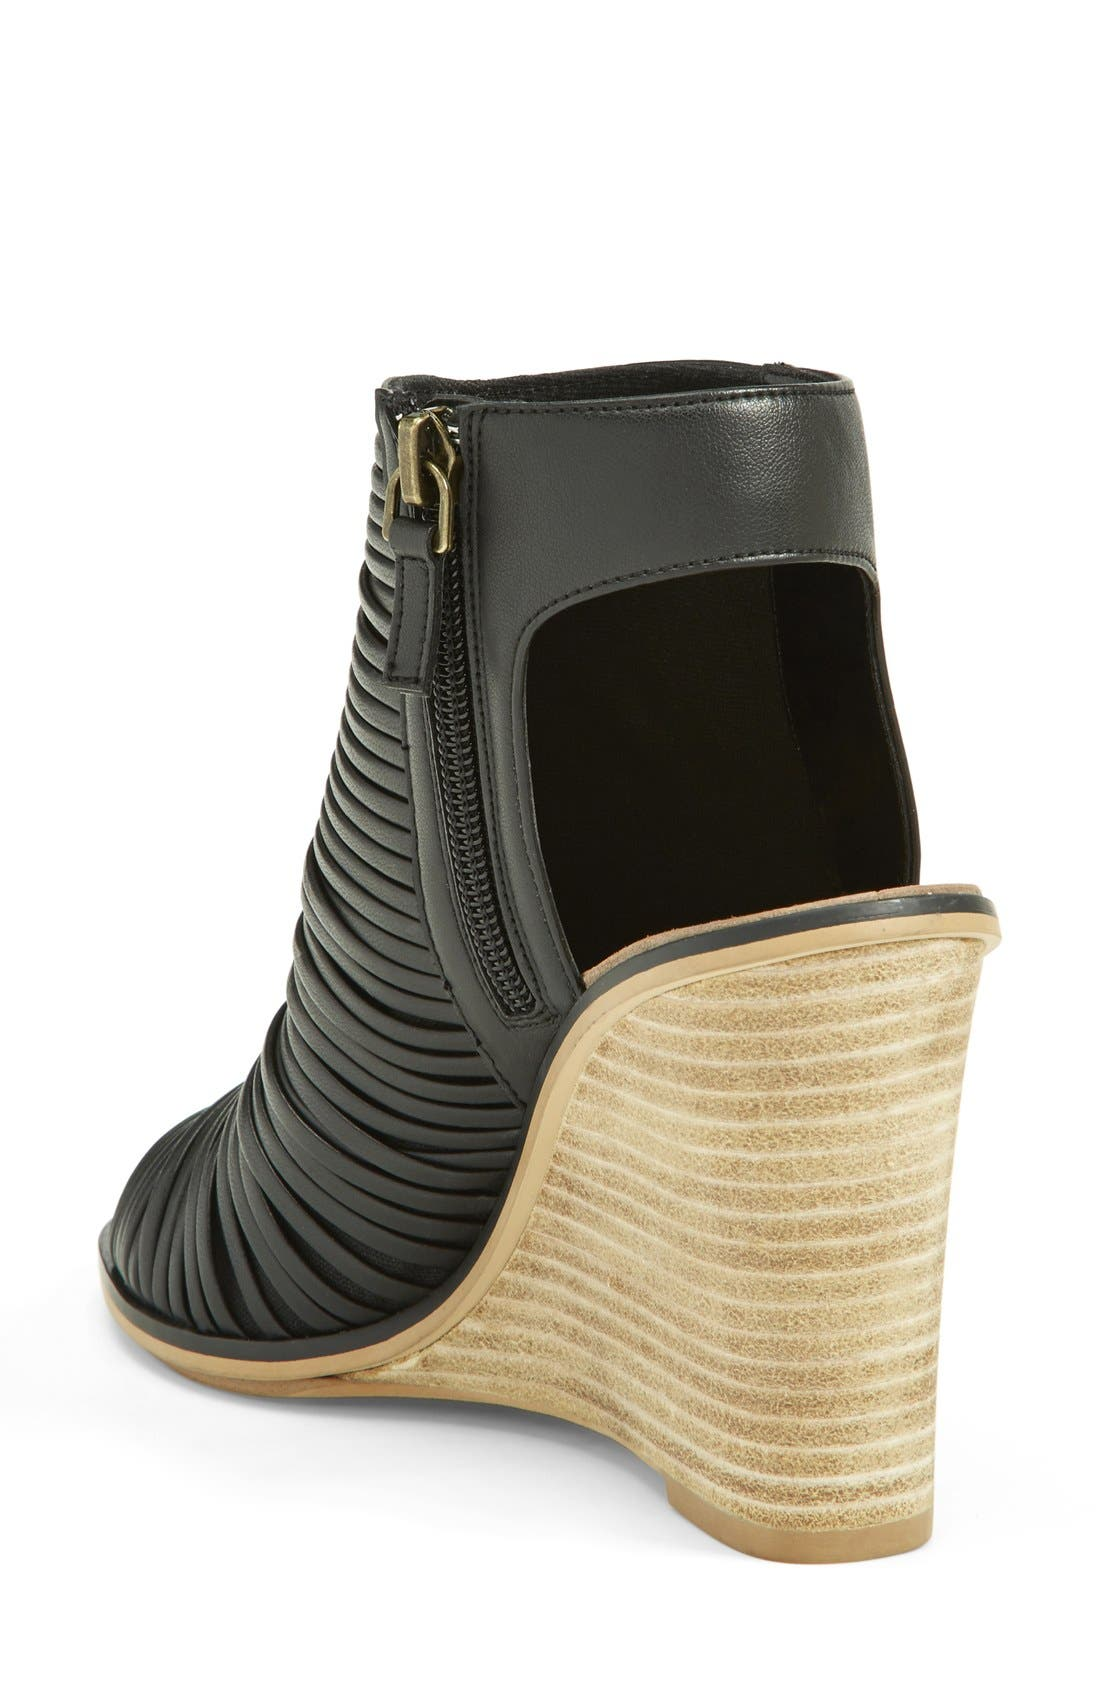 'Turner' Open Toe Wedge Bootie,                             Alternate thumbnail 4, color,                             003